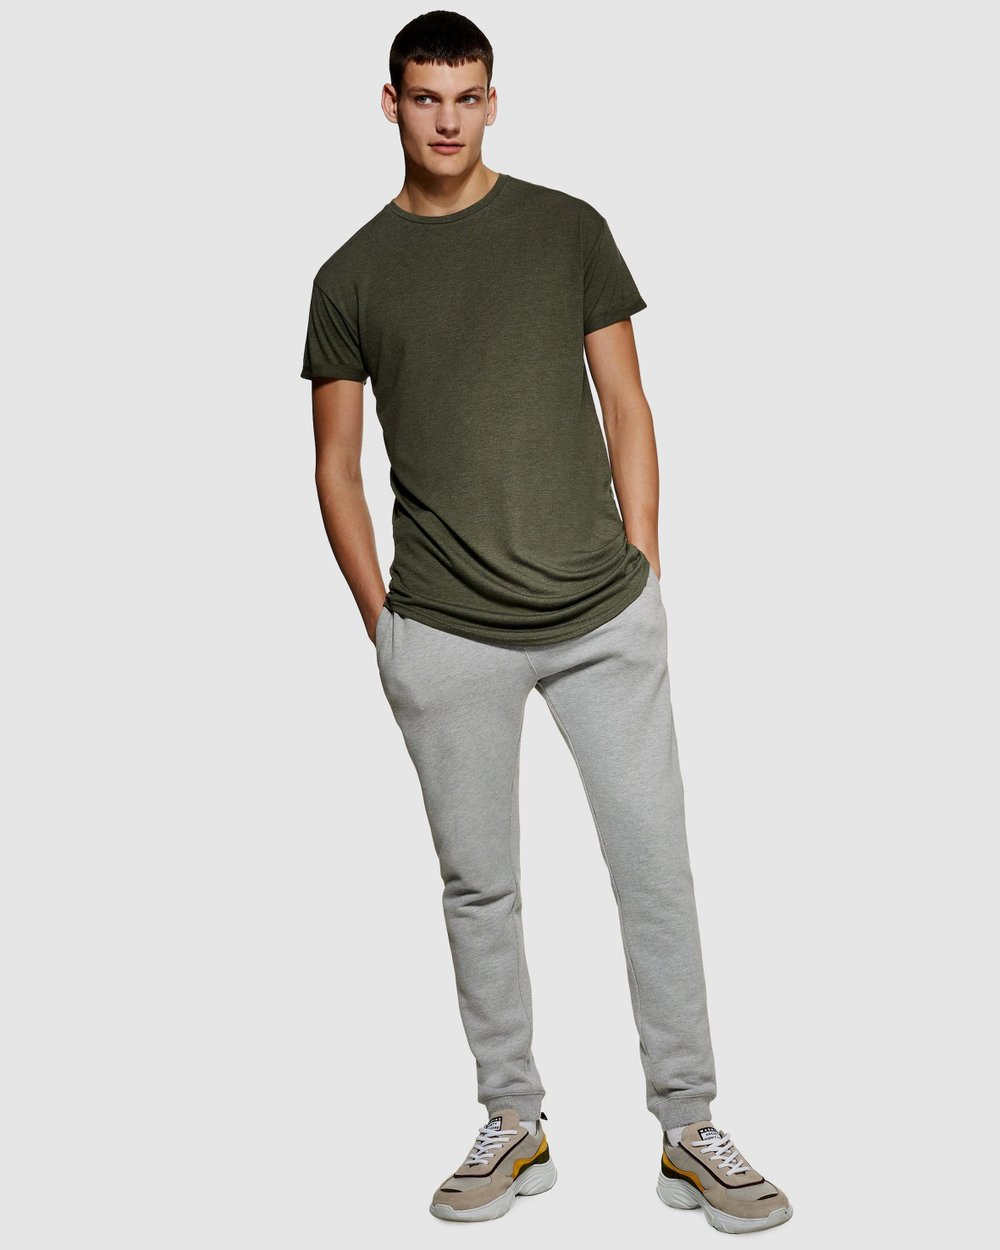 bfdeb00d1 Scotty Short Sleeve Longline T-Shirt by Topman Online | THE ICONIC |  Australia